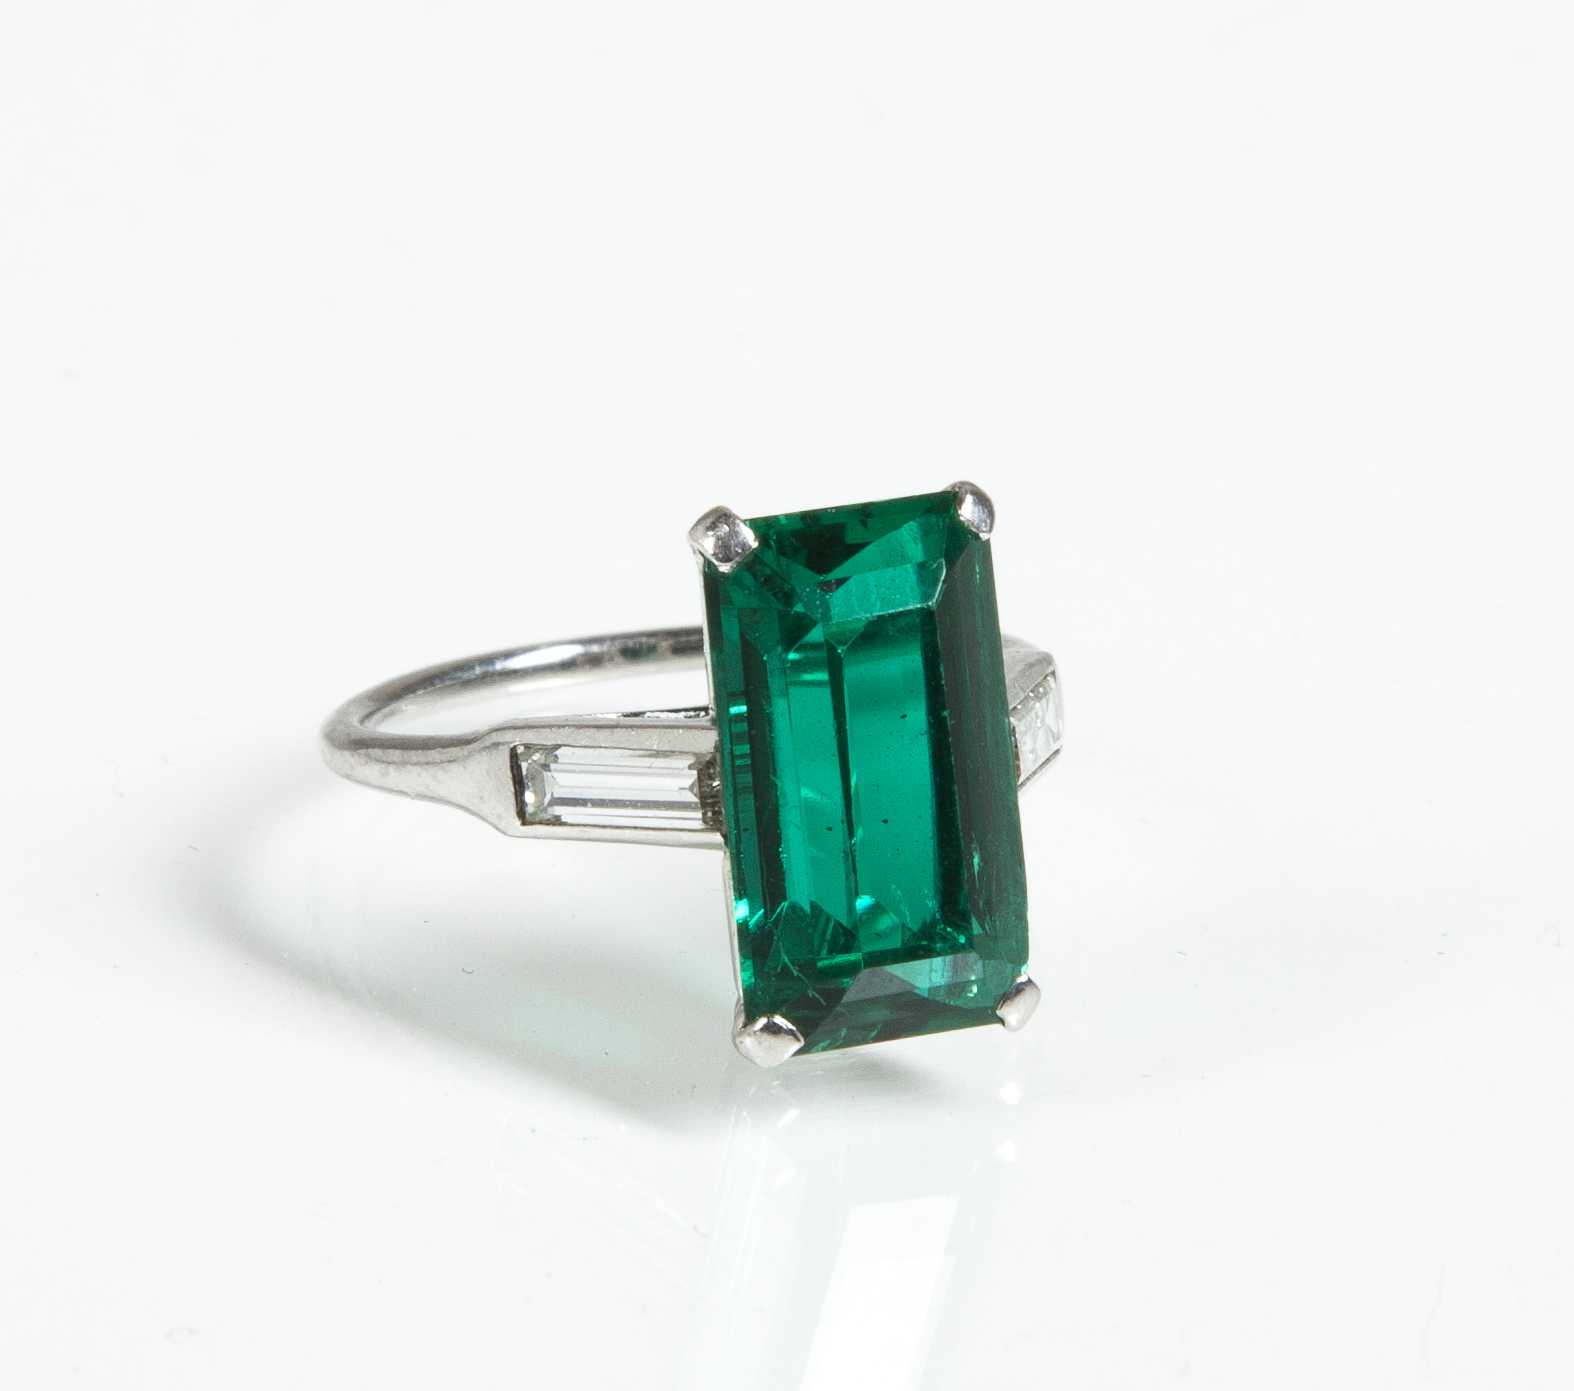 jewellery ring diamond cartier pin luxury vintage emerald